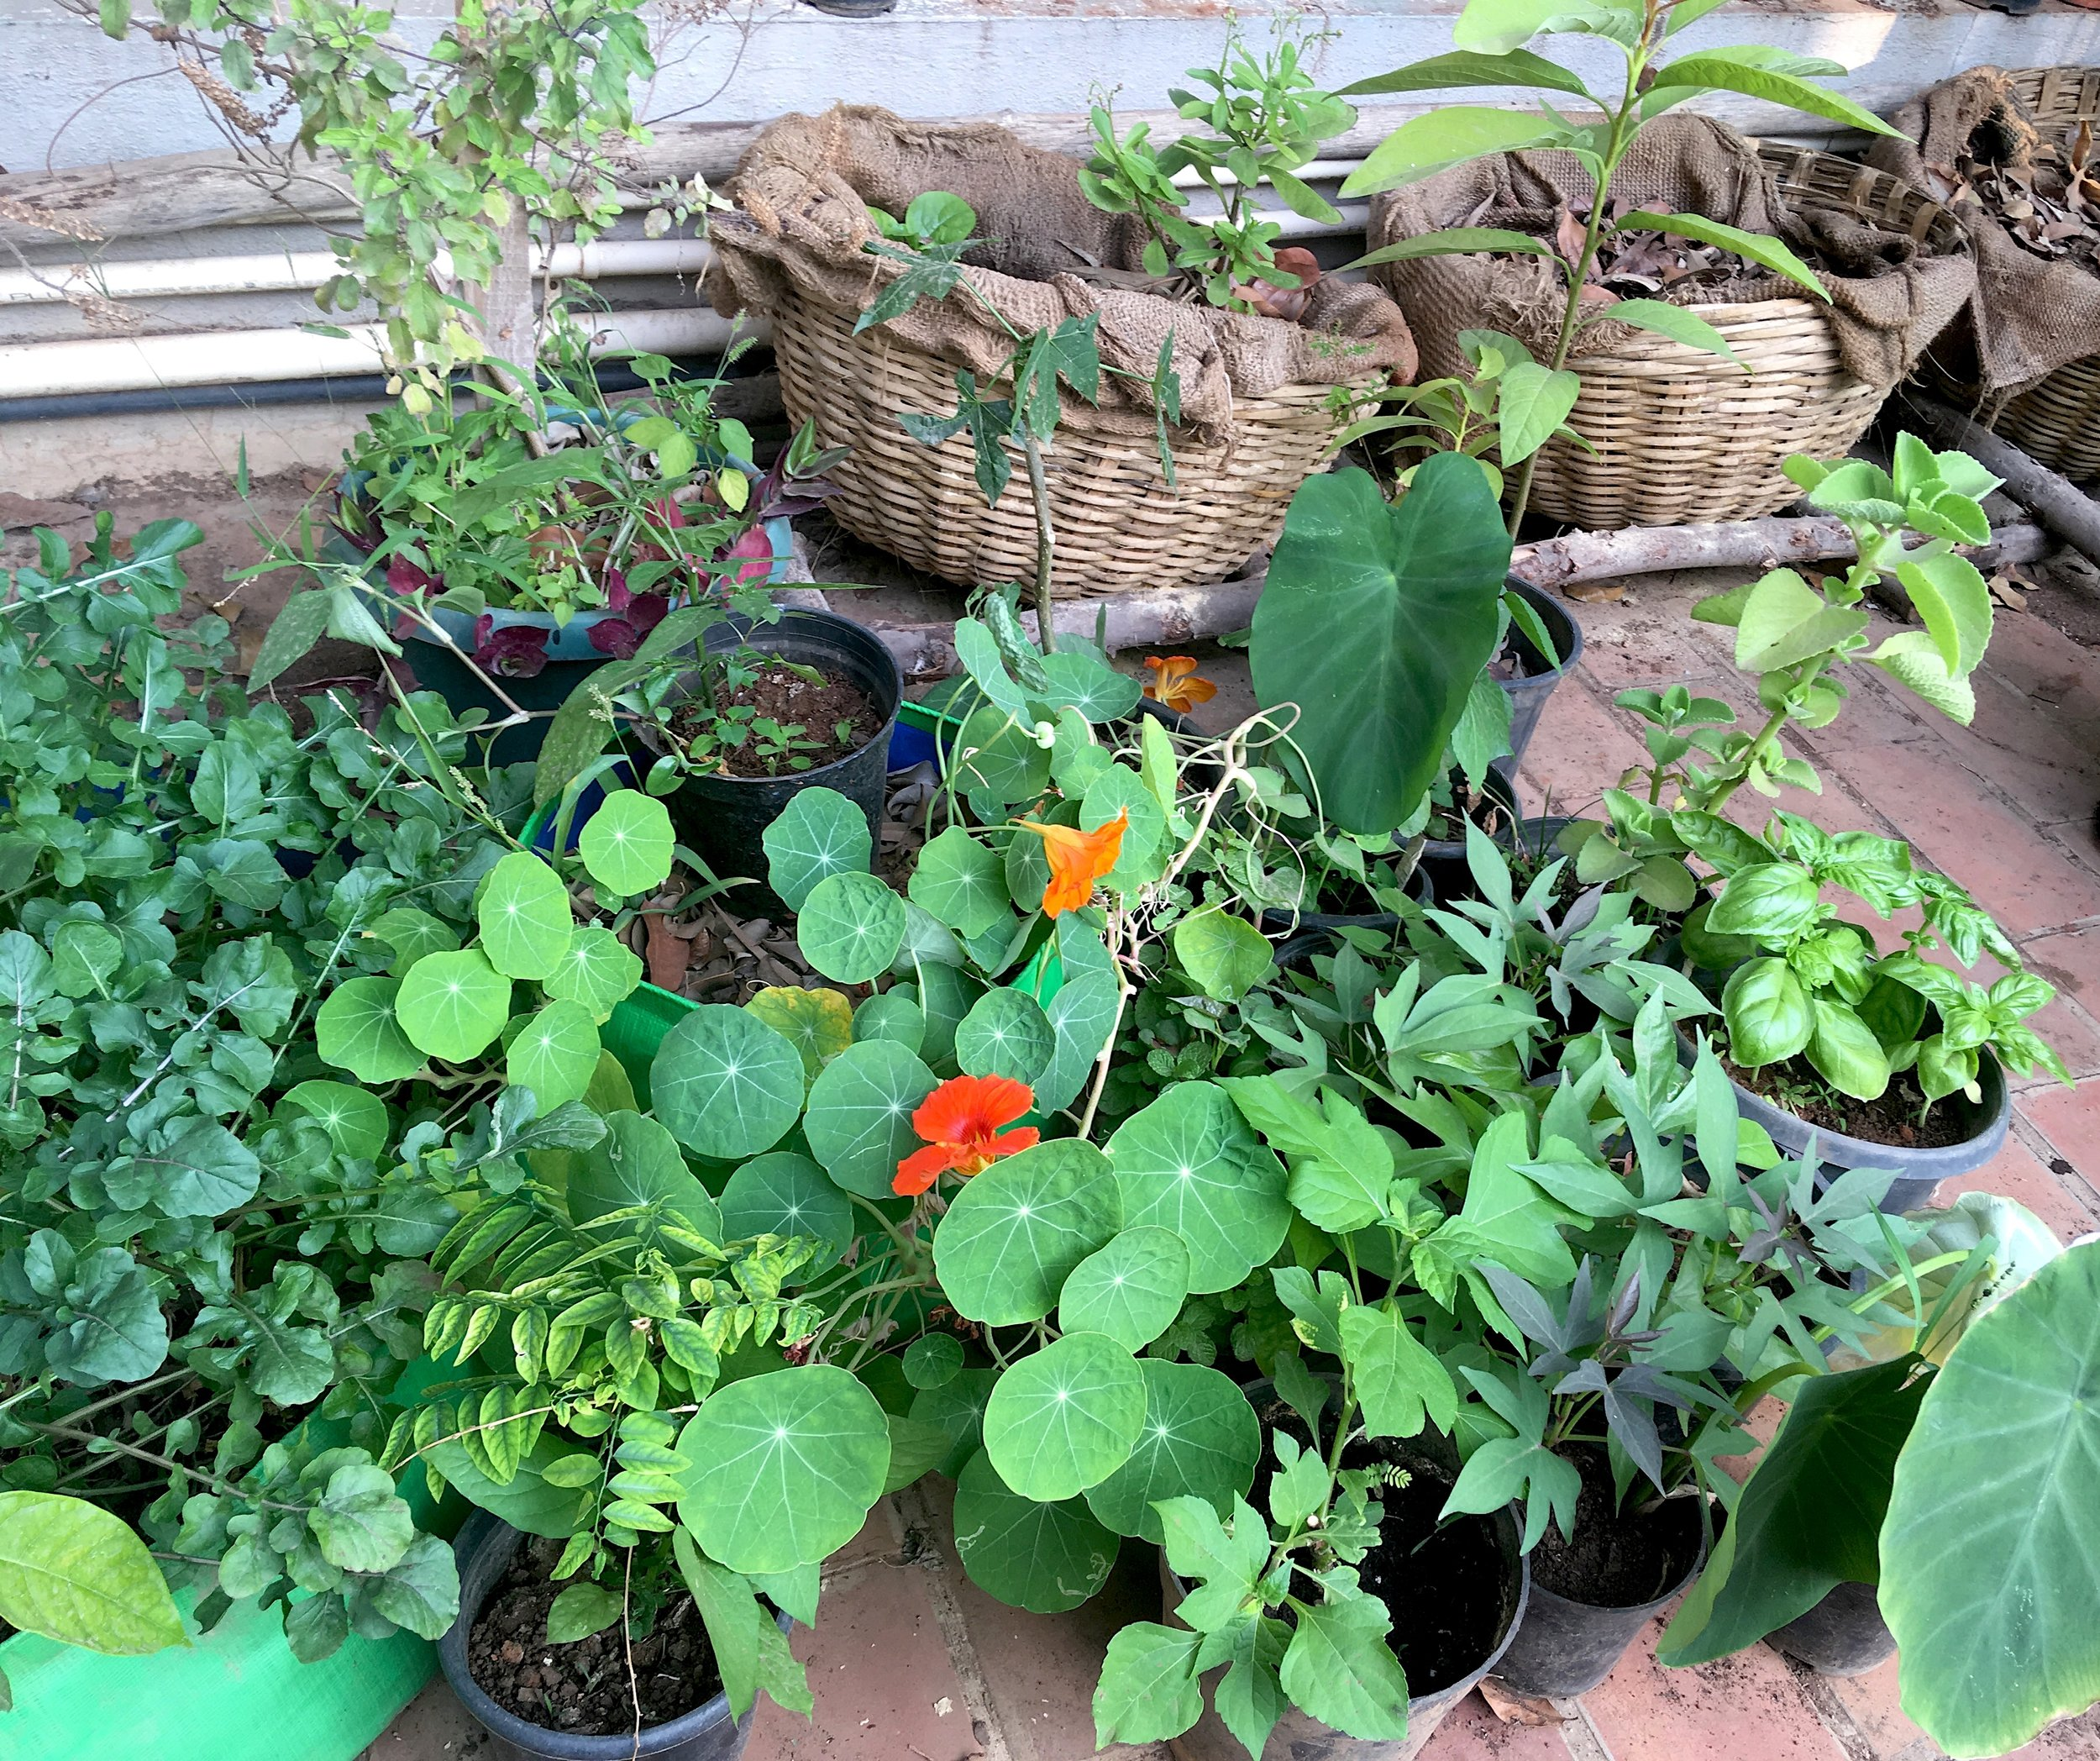 A selection of some edible perennials growing on our terrace garden - Nasturtium, Sweet potato, Multivitamin, Basil, Rosella, Tree Spinach, Ajwain, Talinum, Arugula and Colocasia